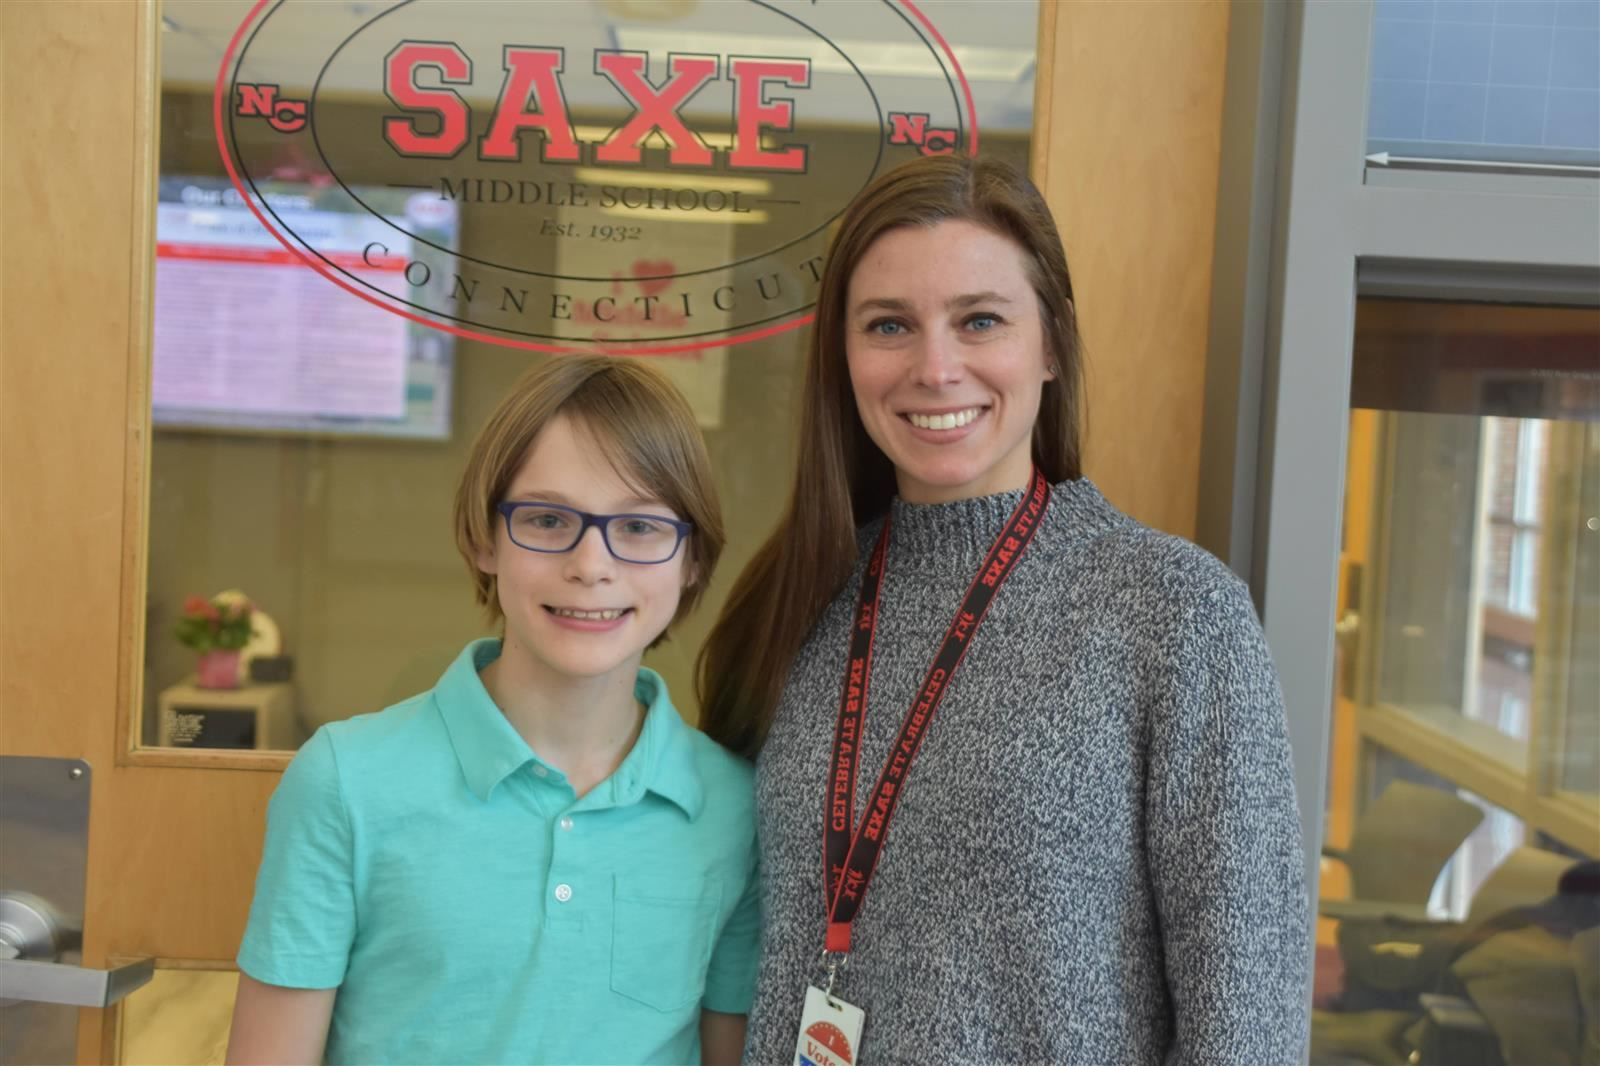 Saxe 6th grader Rowan Richey Elliot pictured with Saxe Social Studies teacher Christina Fulco.